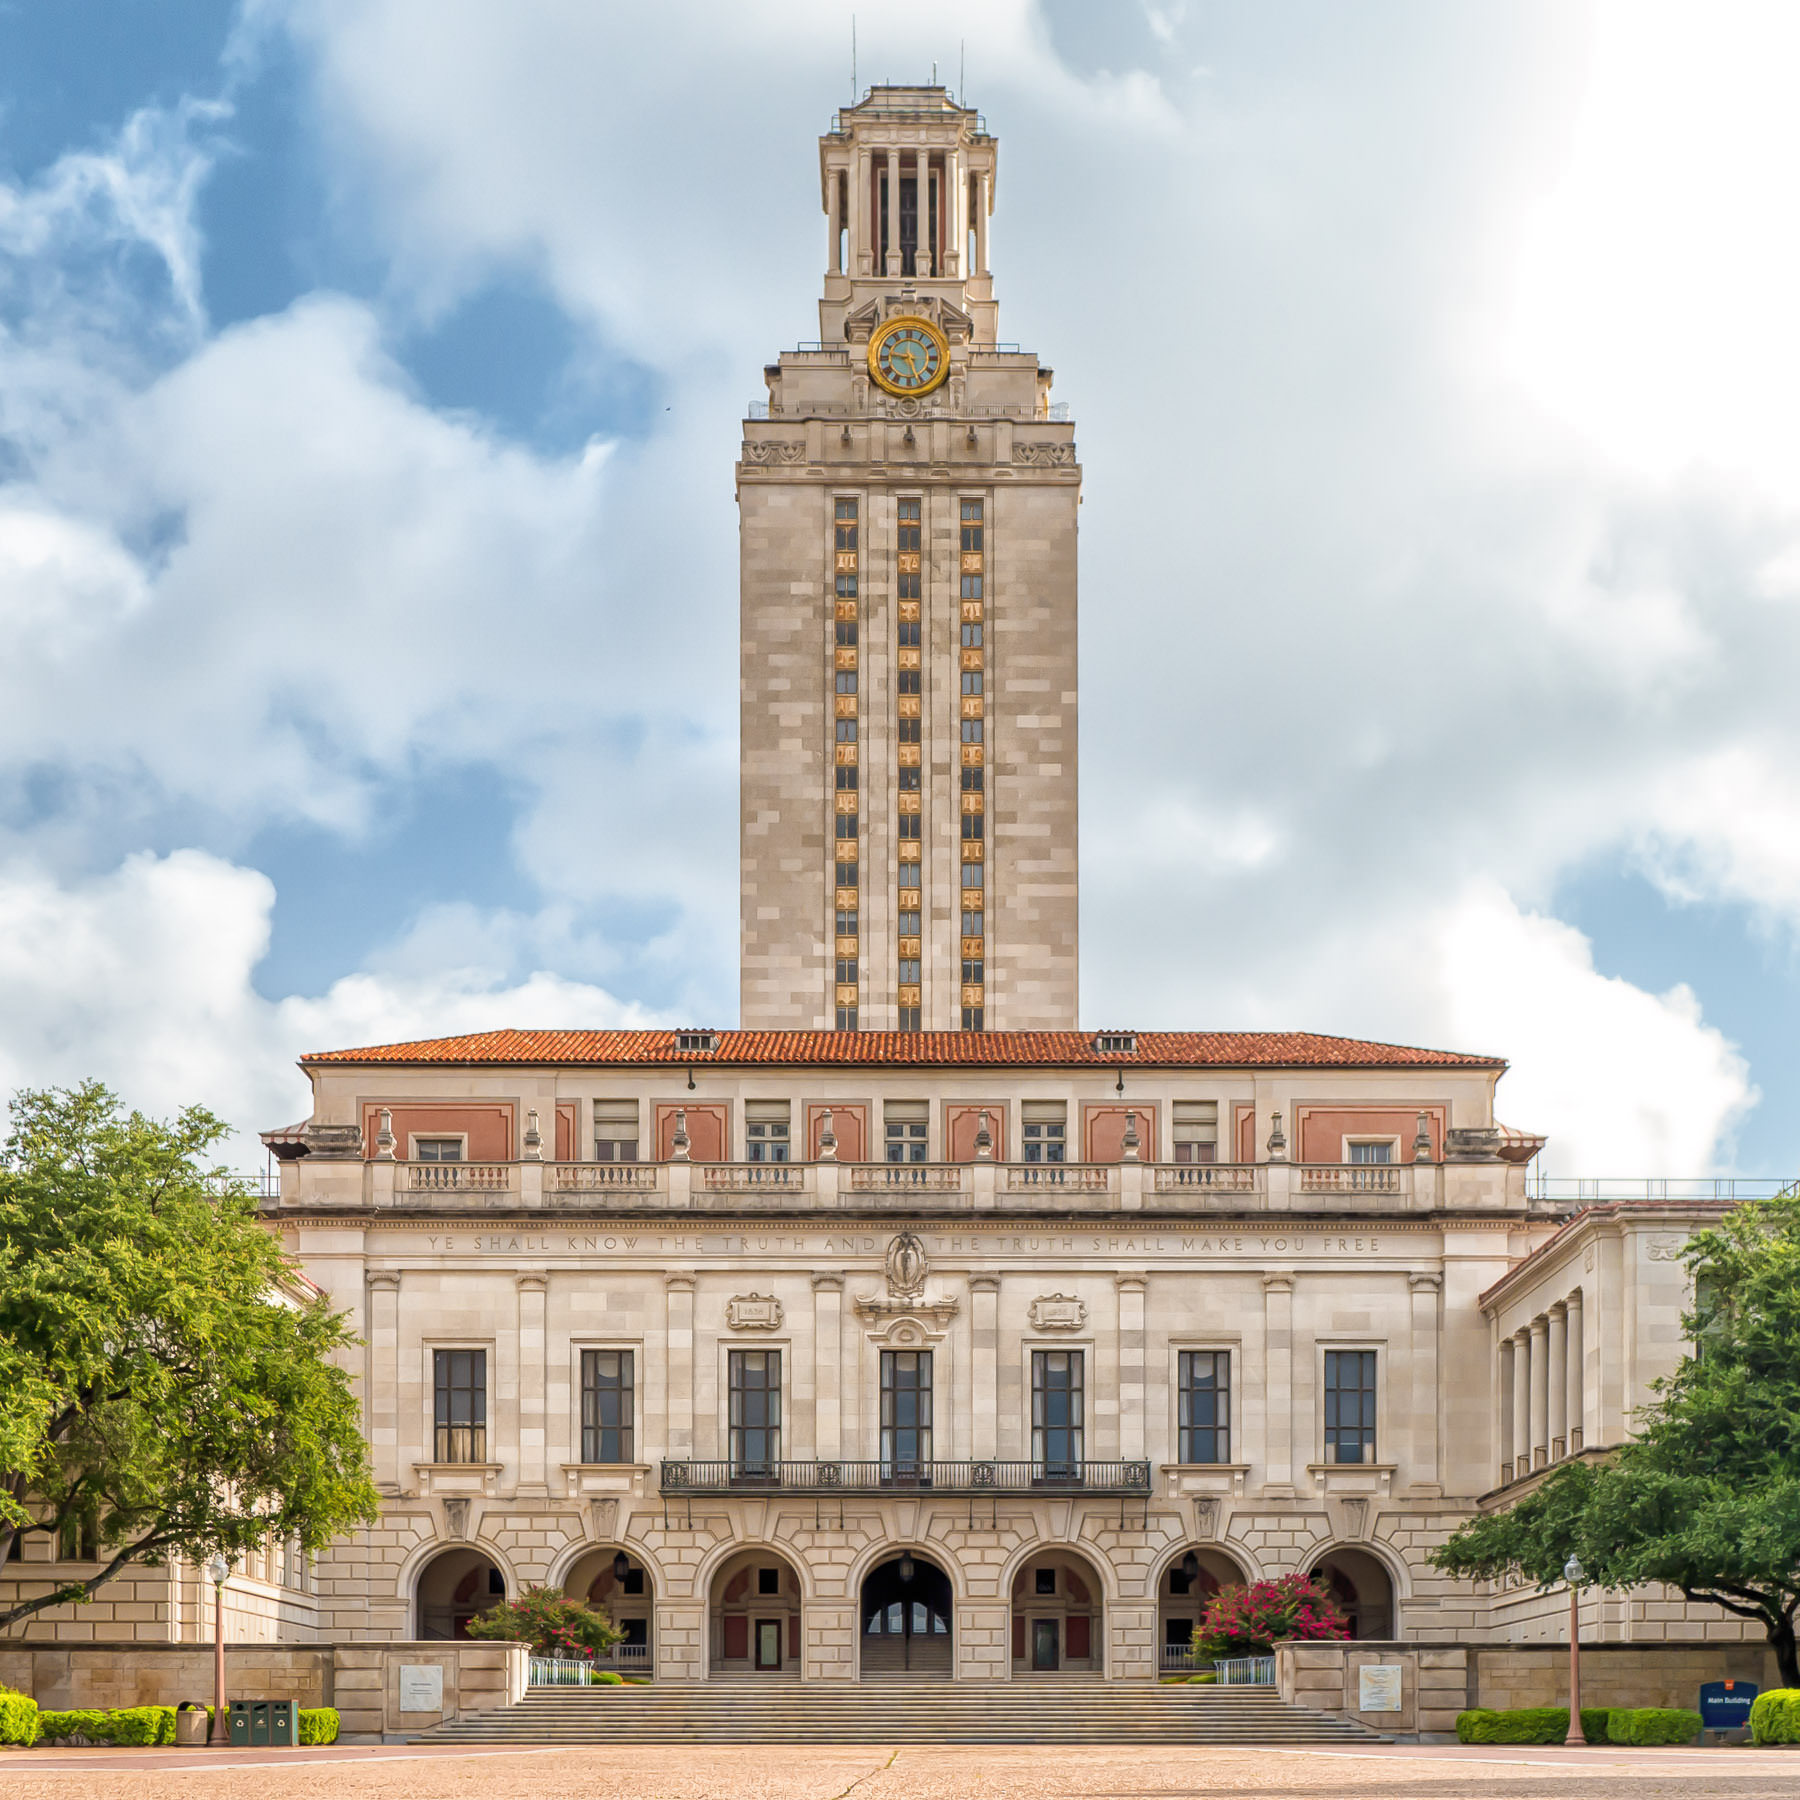 The 307-foot-tall Main Building at the University of Texas at Austin. In 1967, this building became the site of the infamous sniper killings of 14 people perpetrated by Charles Whitman.